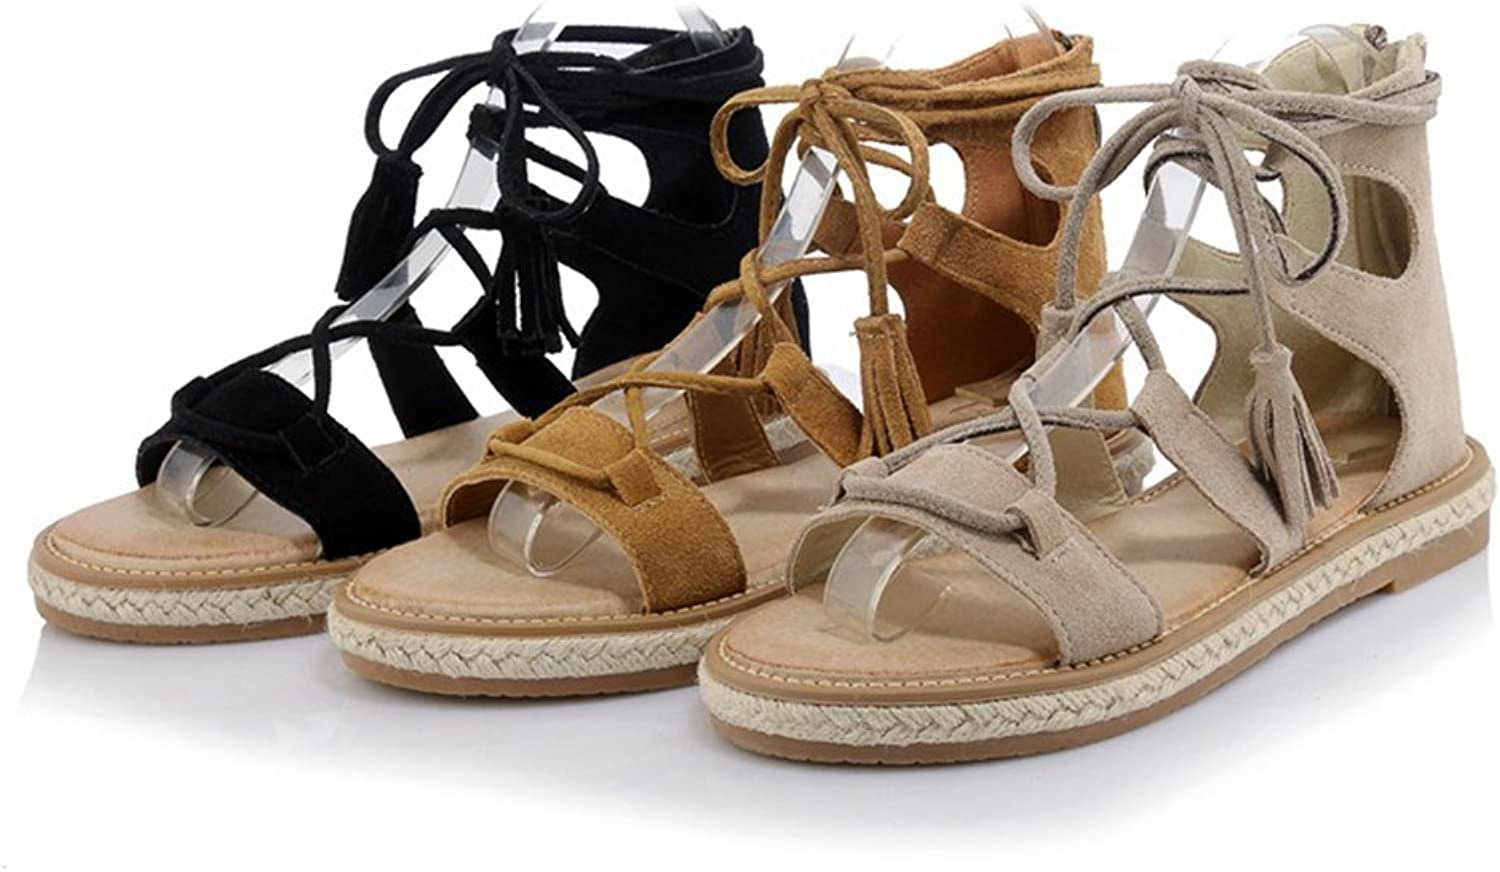 Women's Genuine Leather Braid Strappy Gladiator Tassel Ankle Strap Lace Up Flat Sandals Roman shoes